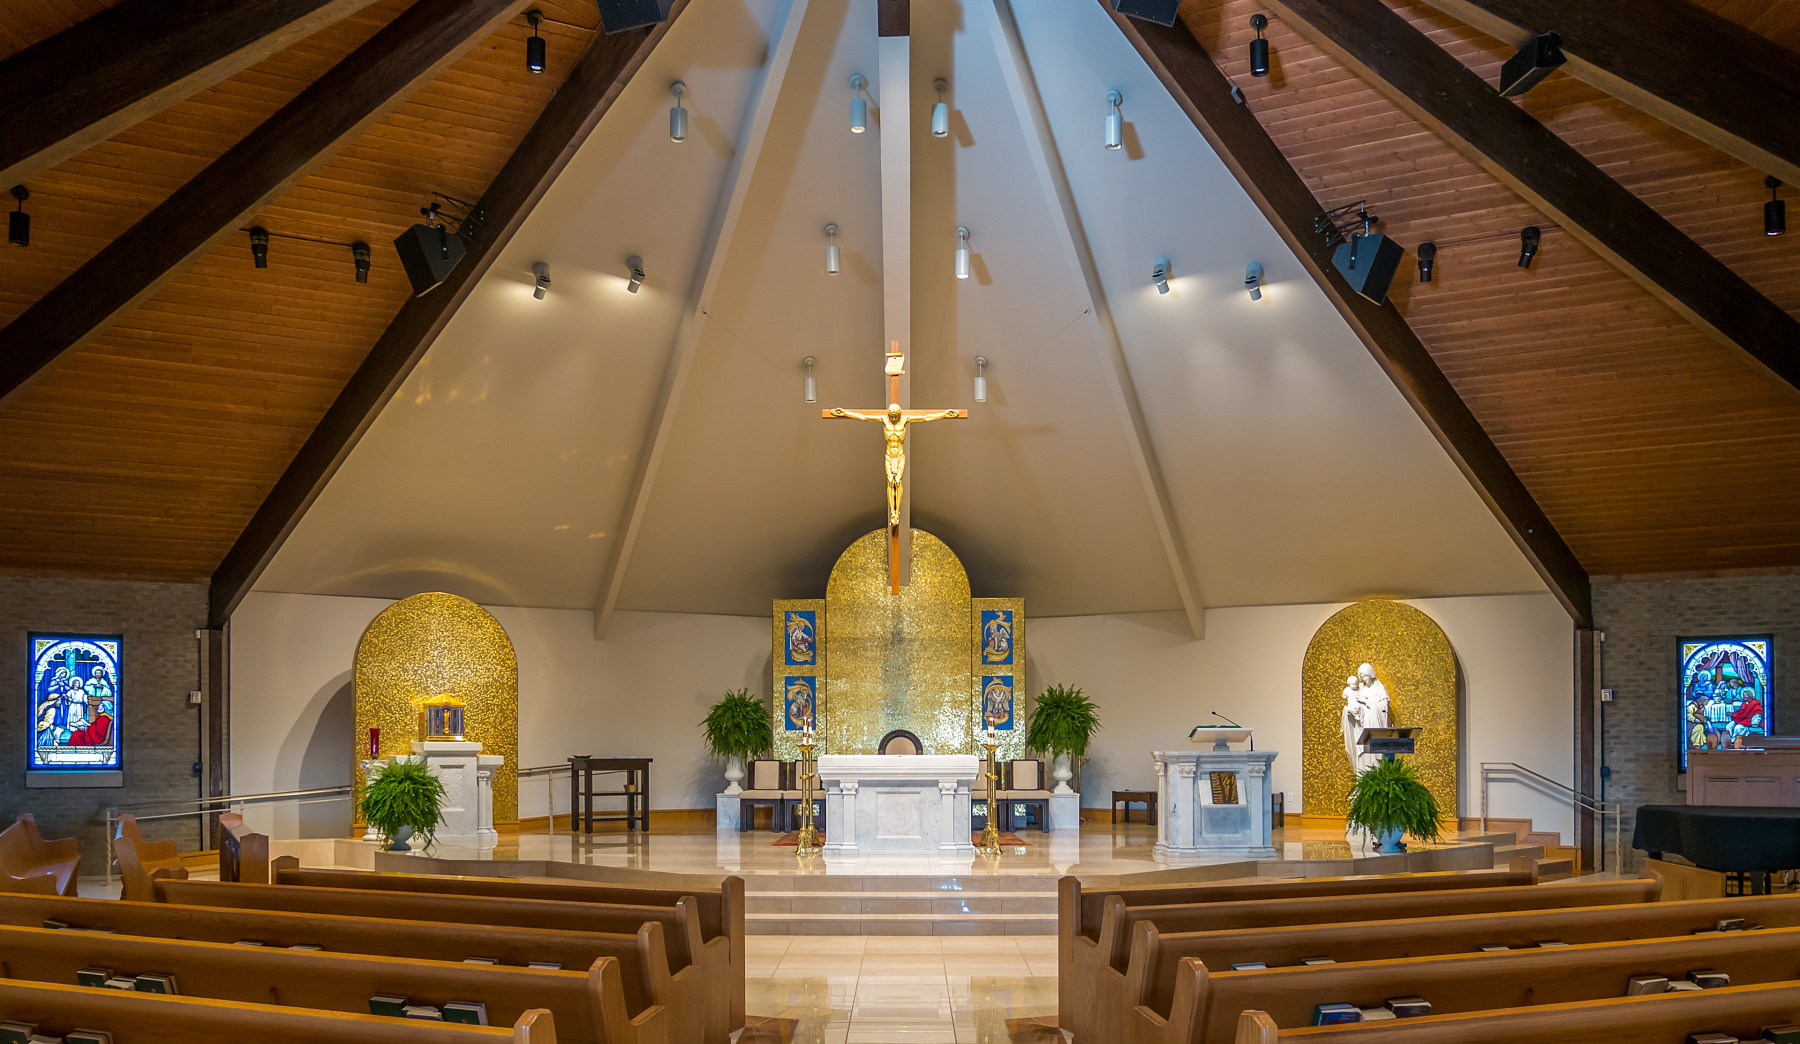 Liturgical Design and Engineered Lighting for Our Lady of Mt. Carmel Catholic Church